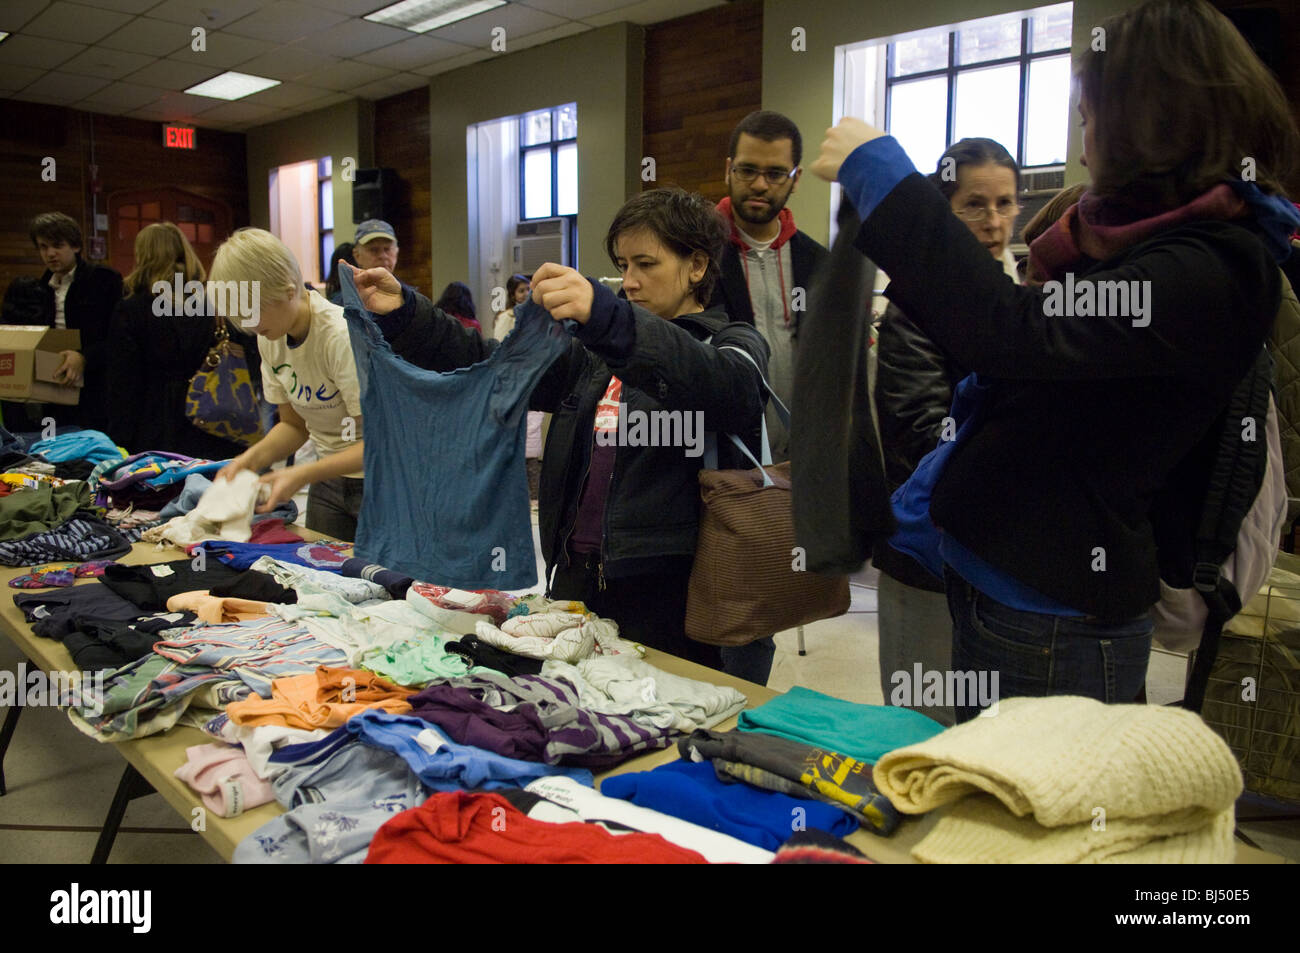 Thrifty shoppers at a free Stop 'N' Swap event in the Jackson Heights neighborhood of Queens in NY - Stock Image